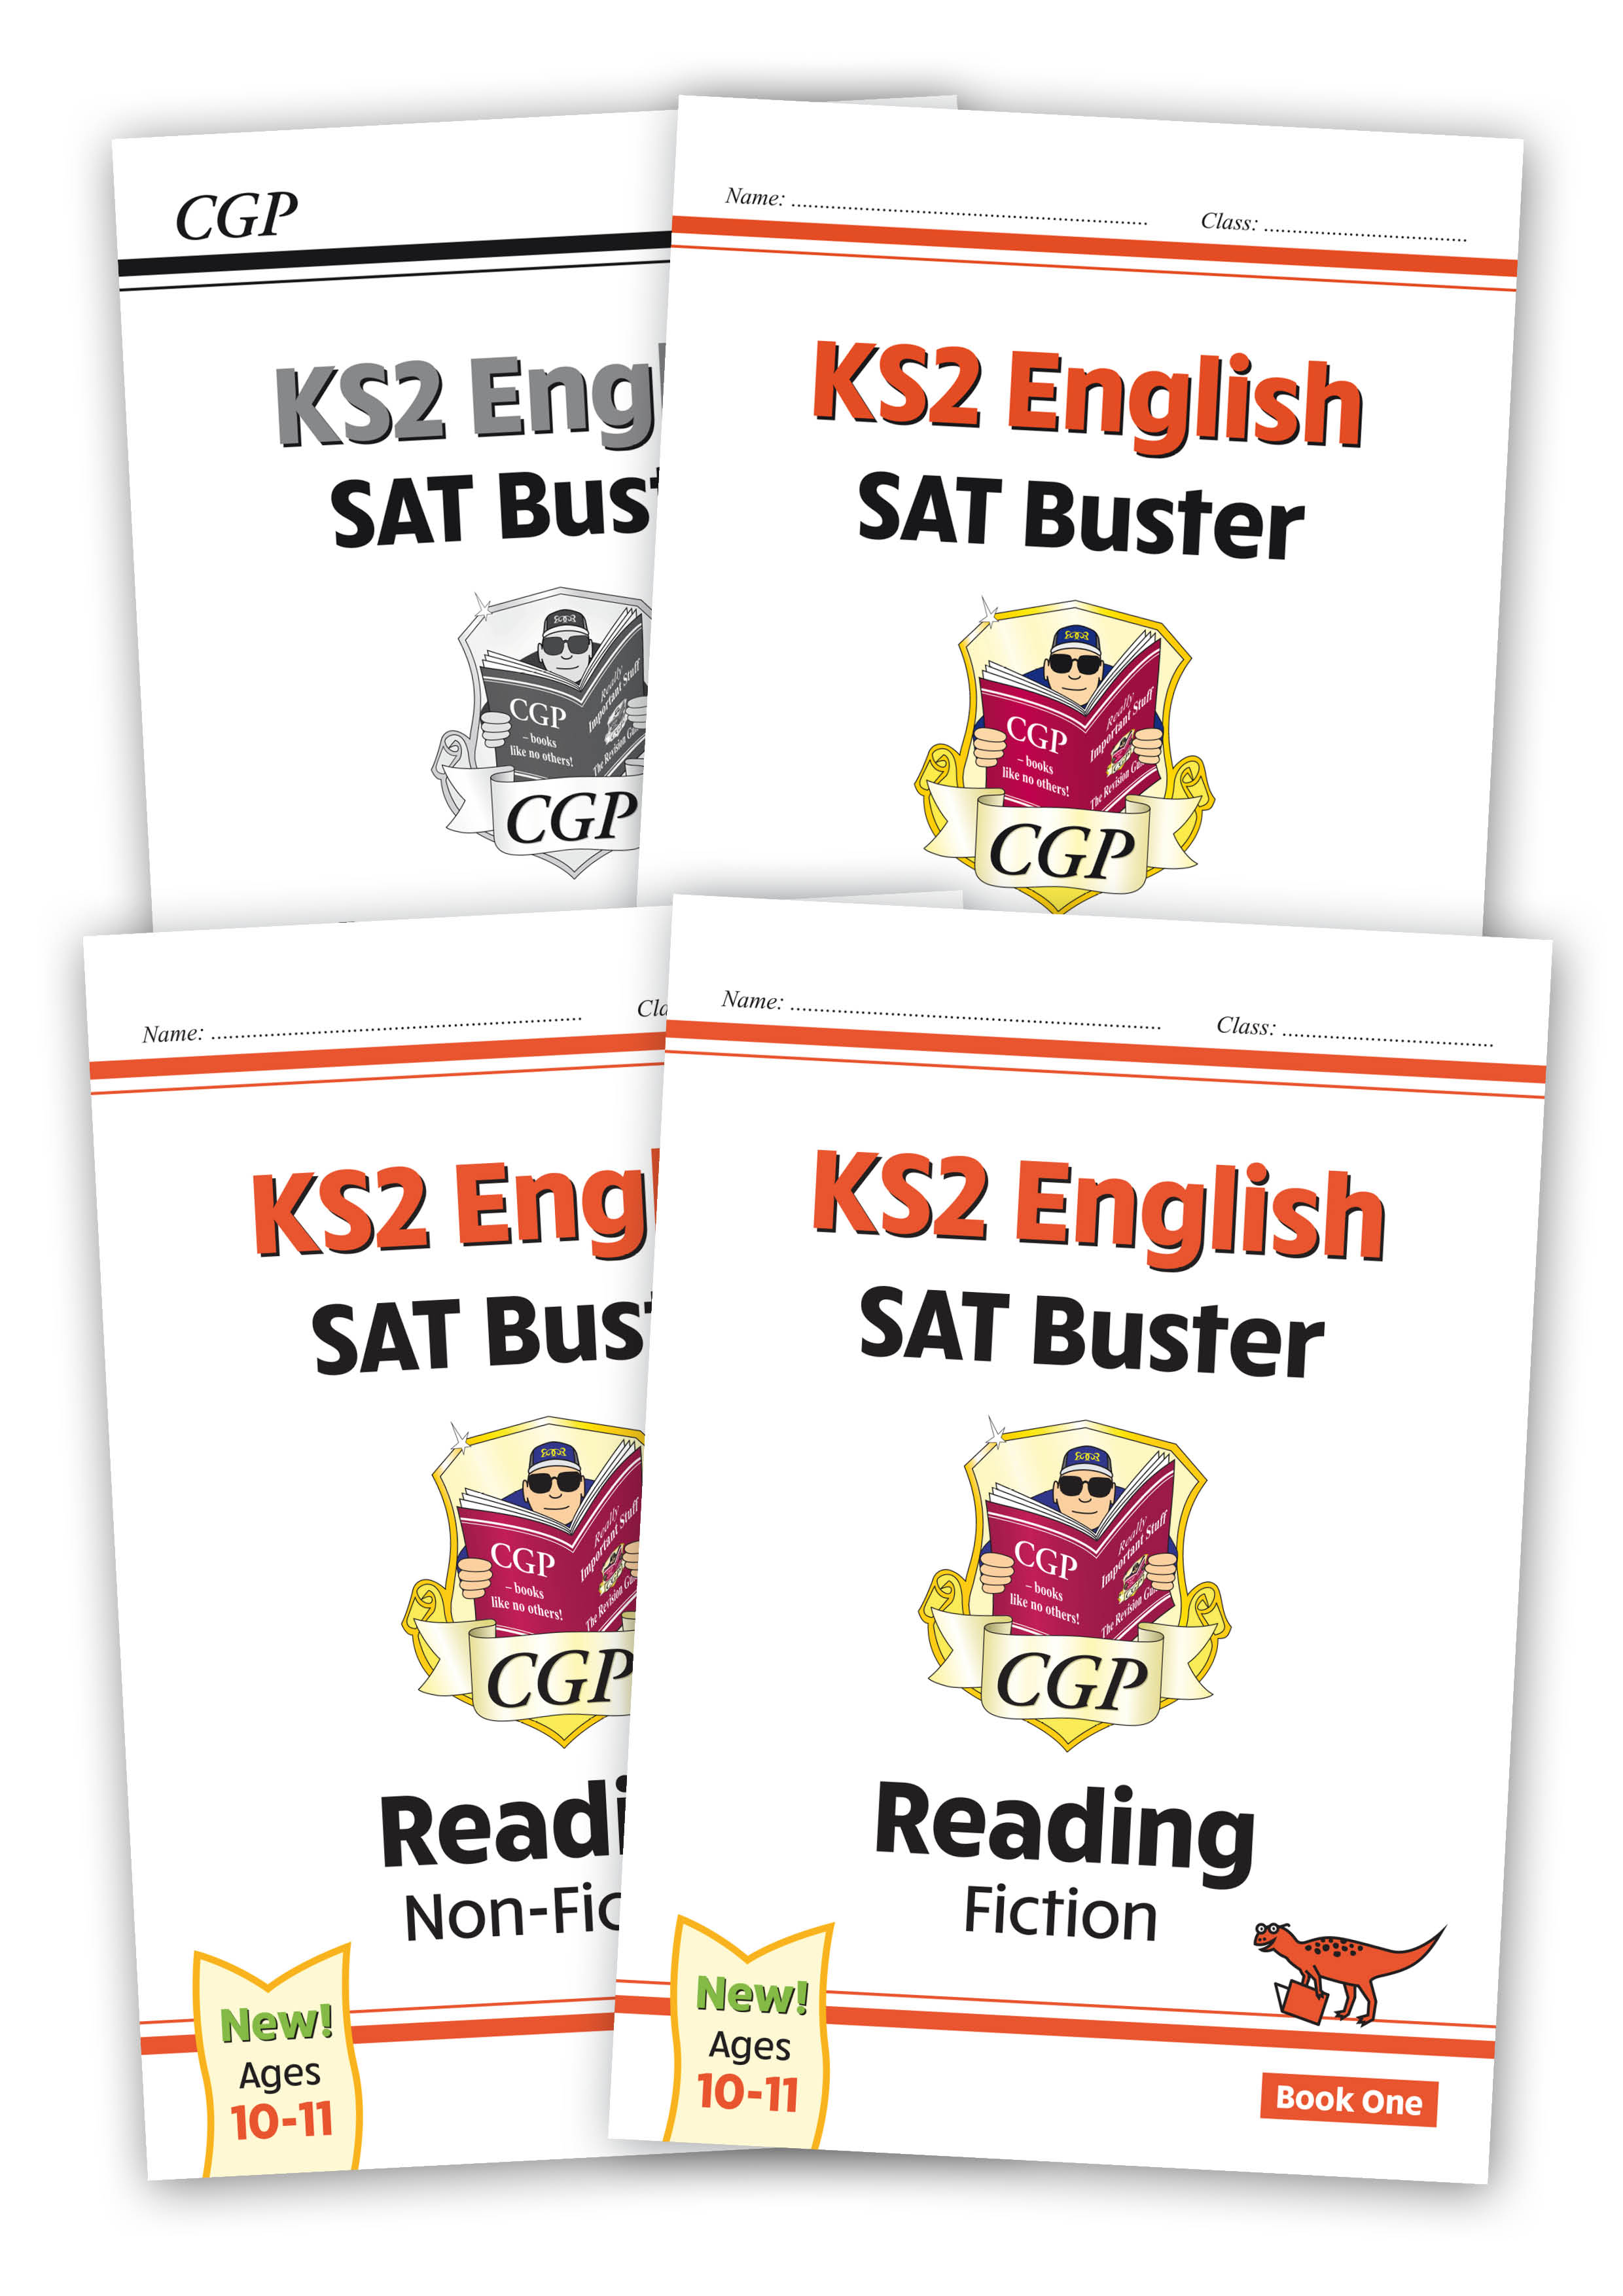 E6FRB22 - New KS2 English Reading SAT Buster Book 1 Bundle - includes answers (for the 2021 tests)